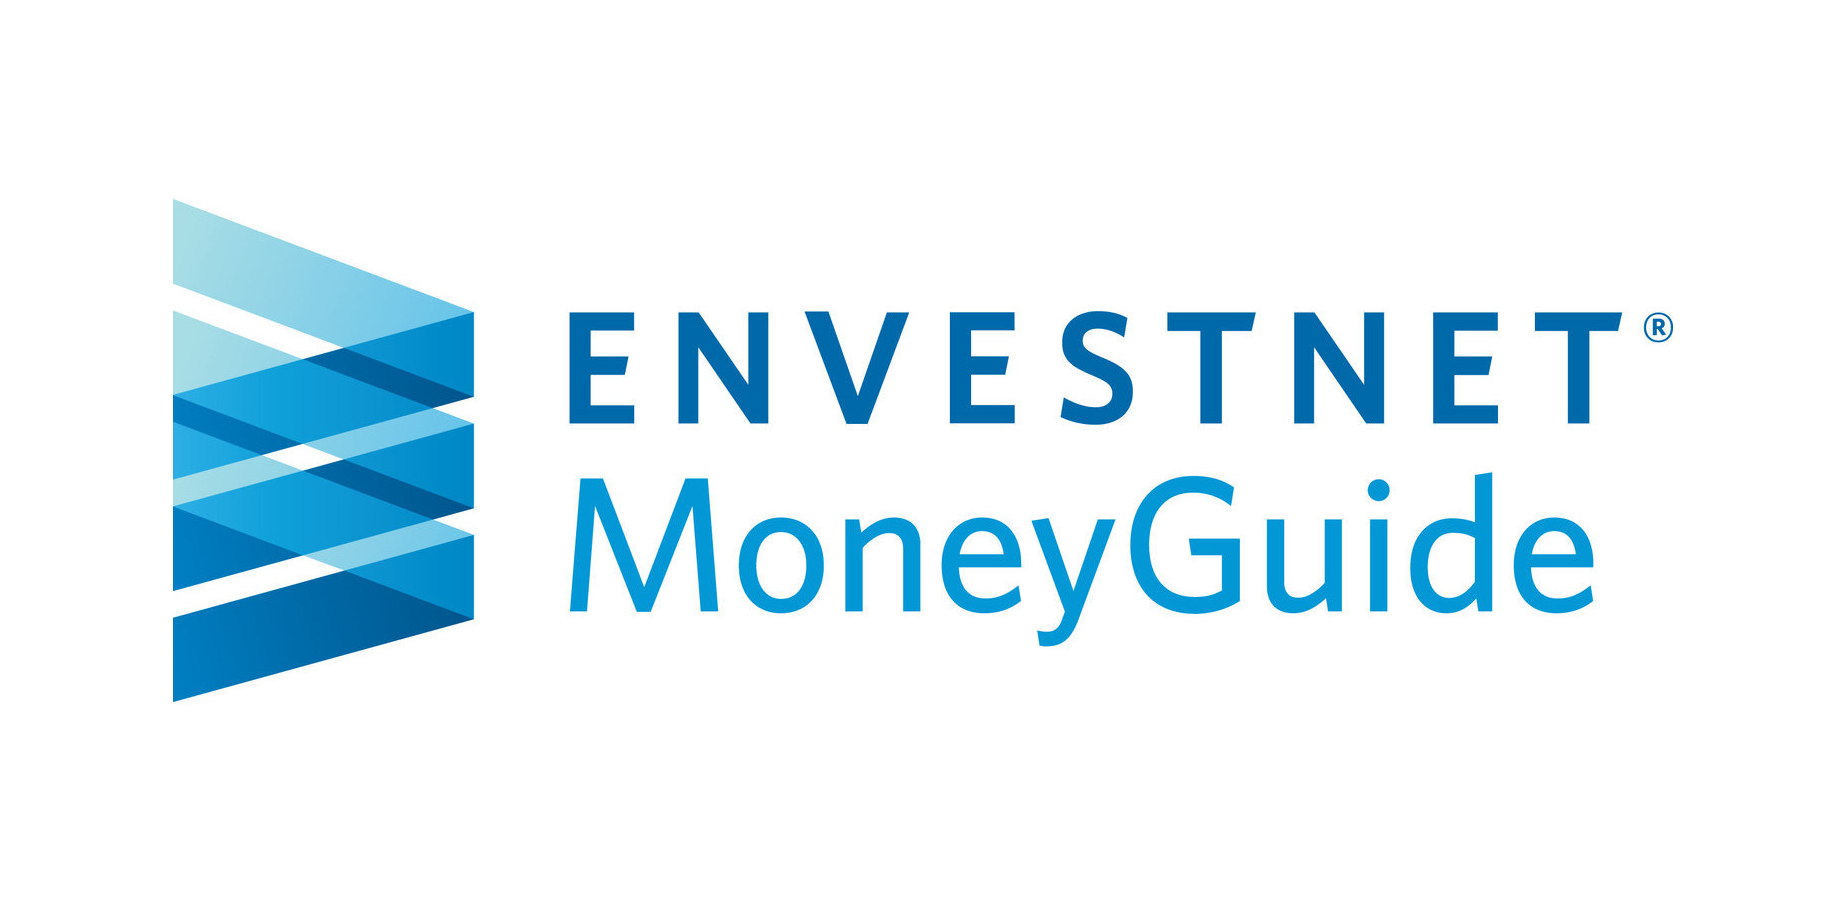 Envestnet MoneyGuide Middleton, MA Tapparo Capital Management